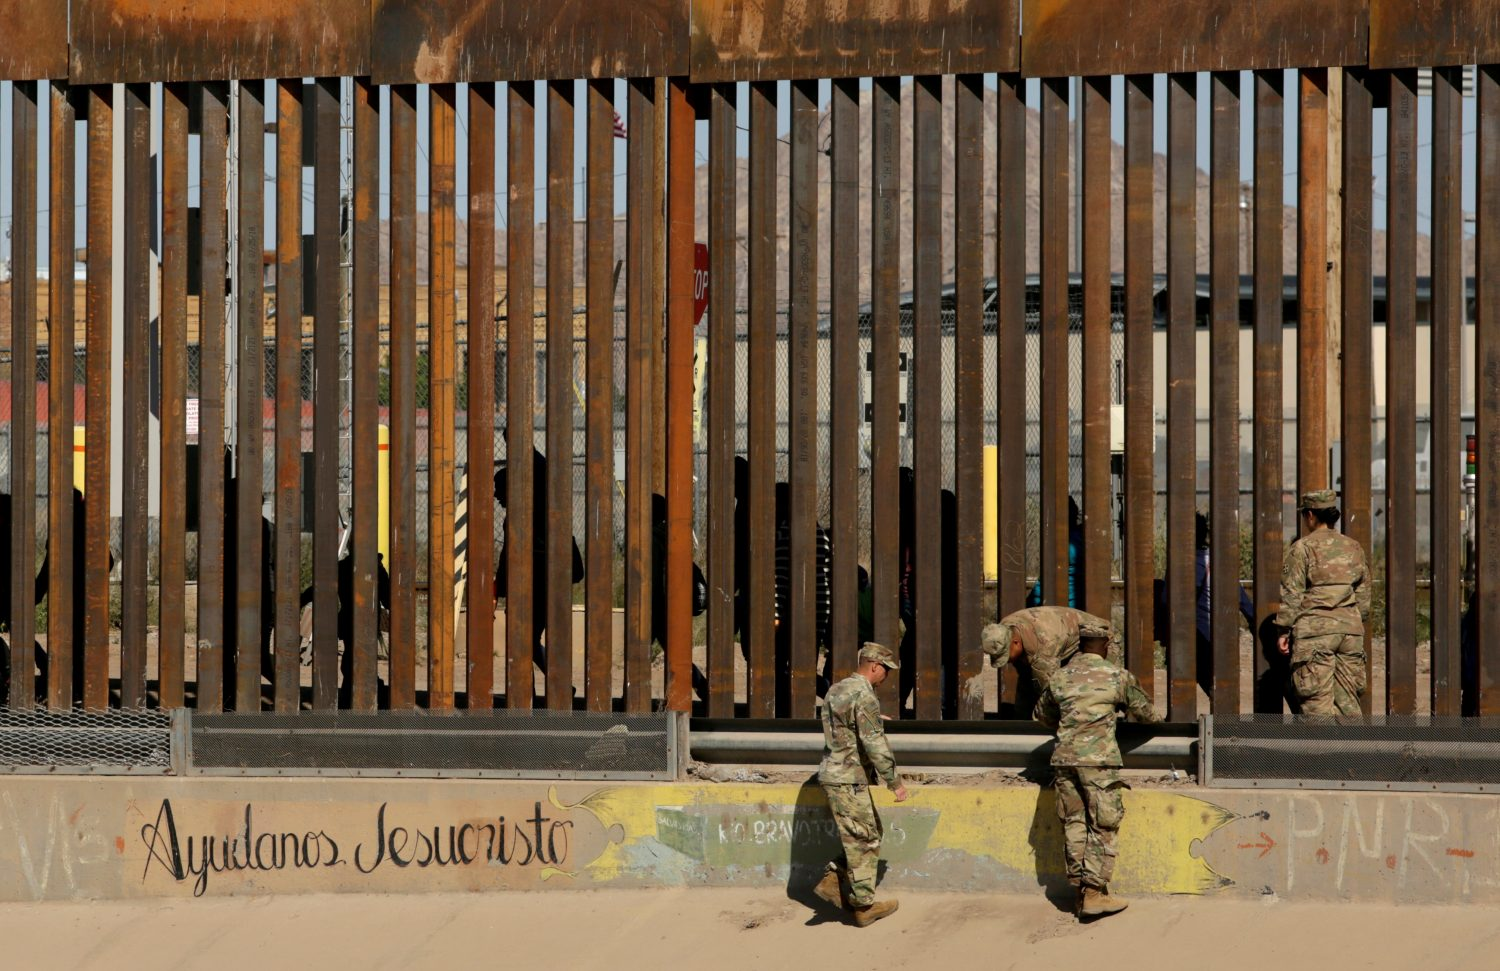 "FILE PHOTO: U.S. soldiers walk next to the border fence between Mexico and the United States, as migrants are seen walking behind the fence, after crossing illegally into the U.S. to turn themselves in, in El Paso, Texas, U.S., in this picture taken from Ciudad Juarez, Mexico, April 3, 2019. The writing on the wall reads, ""Help us Jesus Christ."" REUTERS/Jose Luis Gonzalez/File Photo"